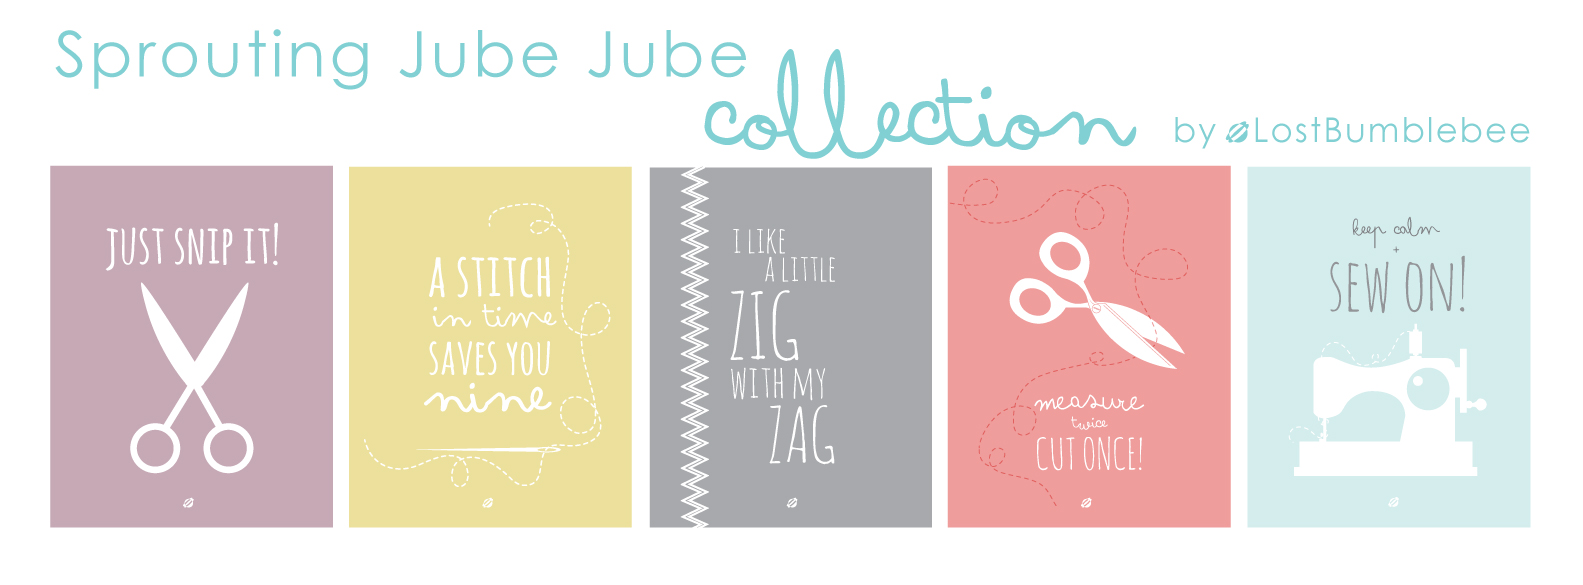 LostBumblebee ©2014 Sprouting Jube Jube Collection  Web Header- free printables- free for personal use only